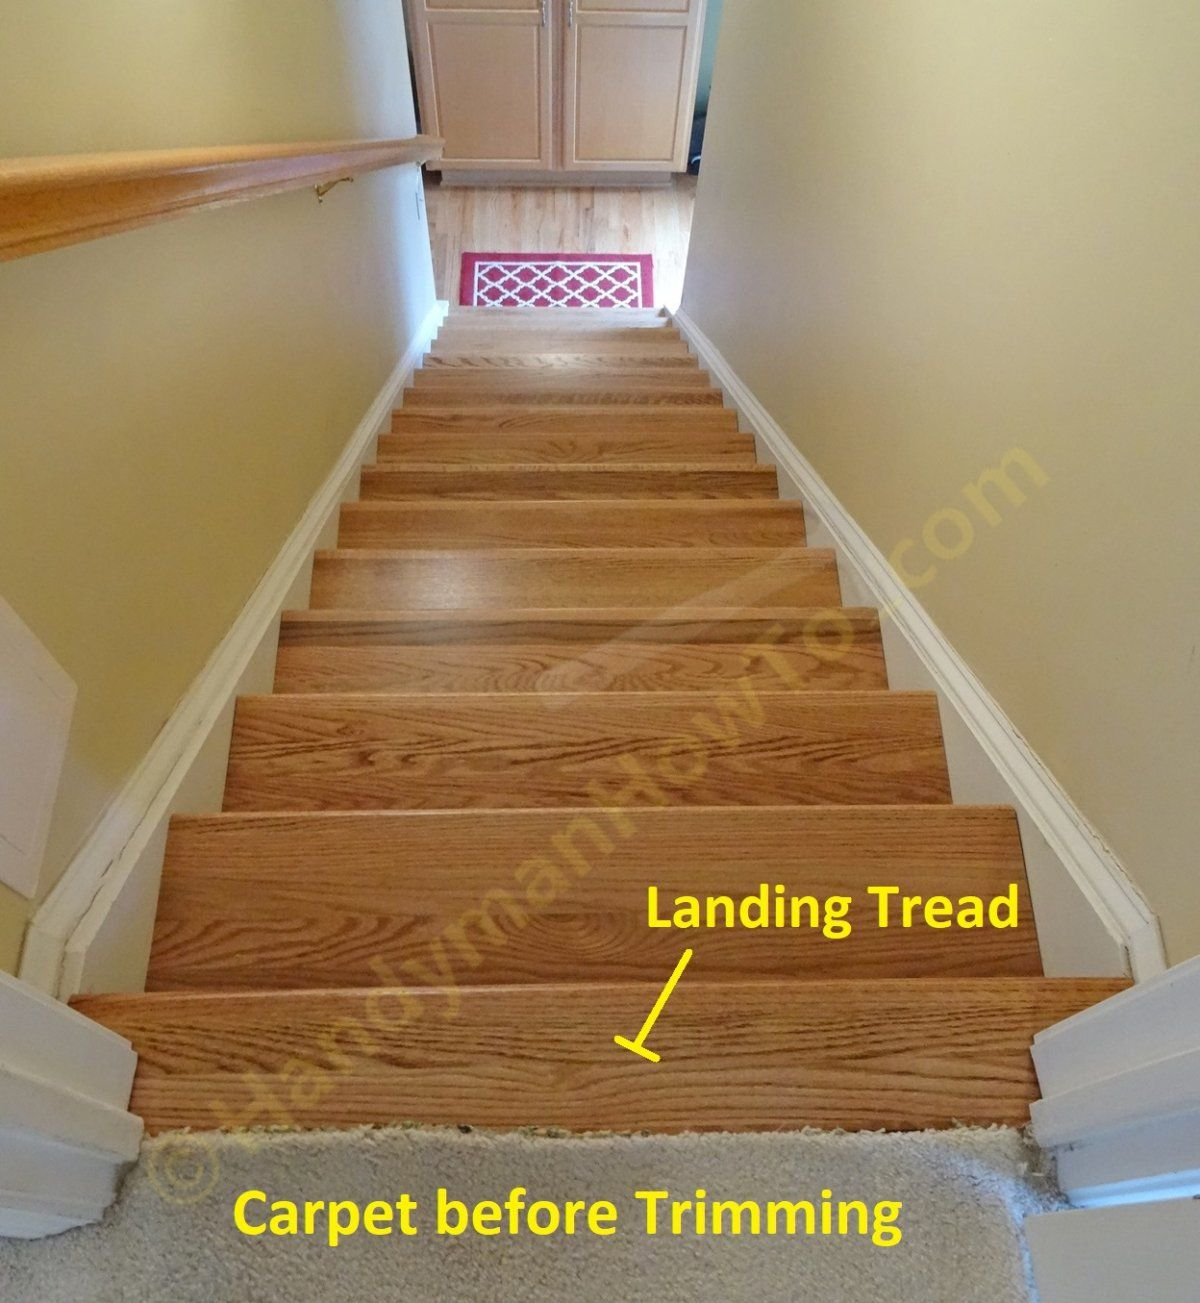 Young Retrotread Installation Carpet Fitting At Stair Landing | Cost To Re Carpet Stairs And Landing | Berber Carpet | Stair Runner | Stair Nosing | Laminate Flooring | Des Kelly